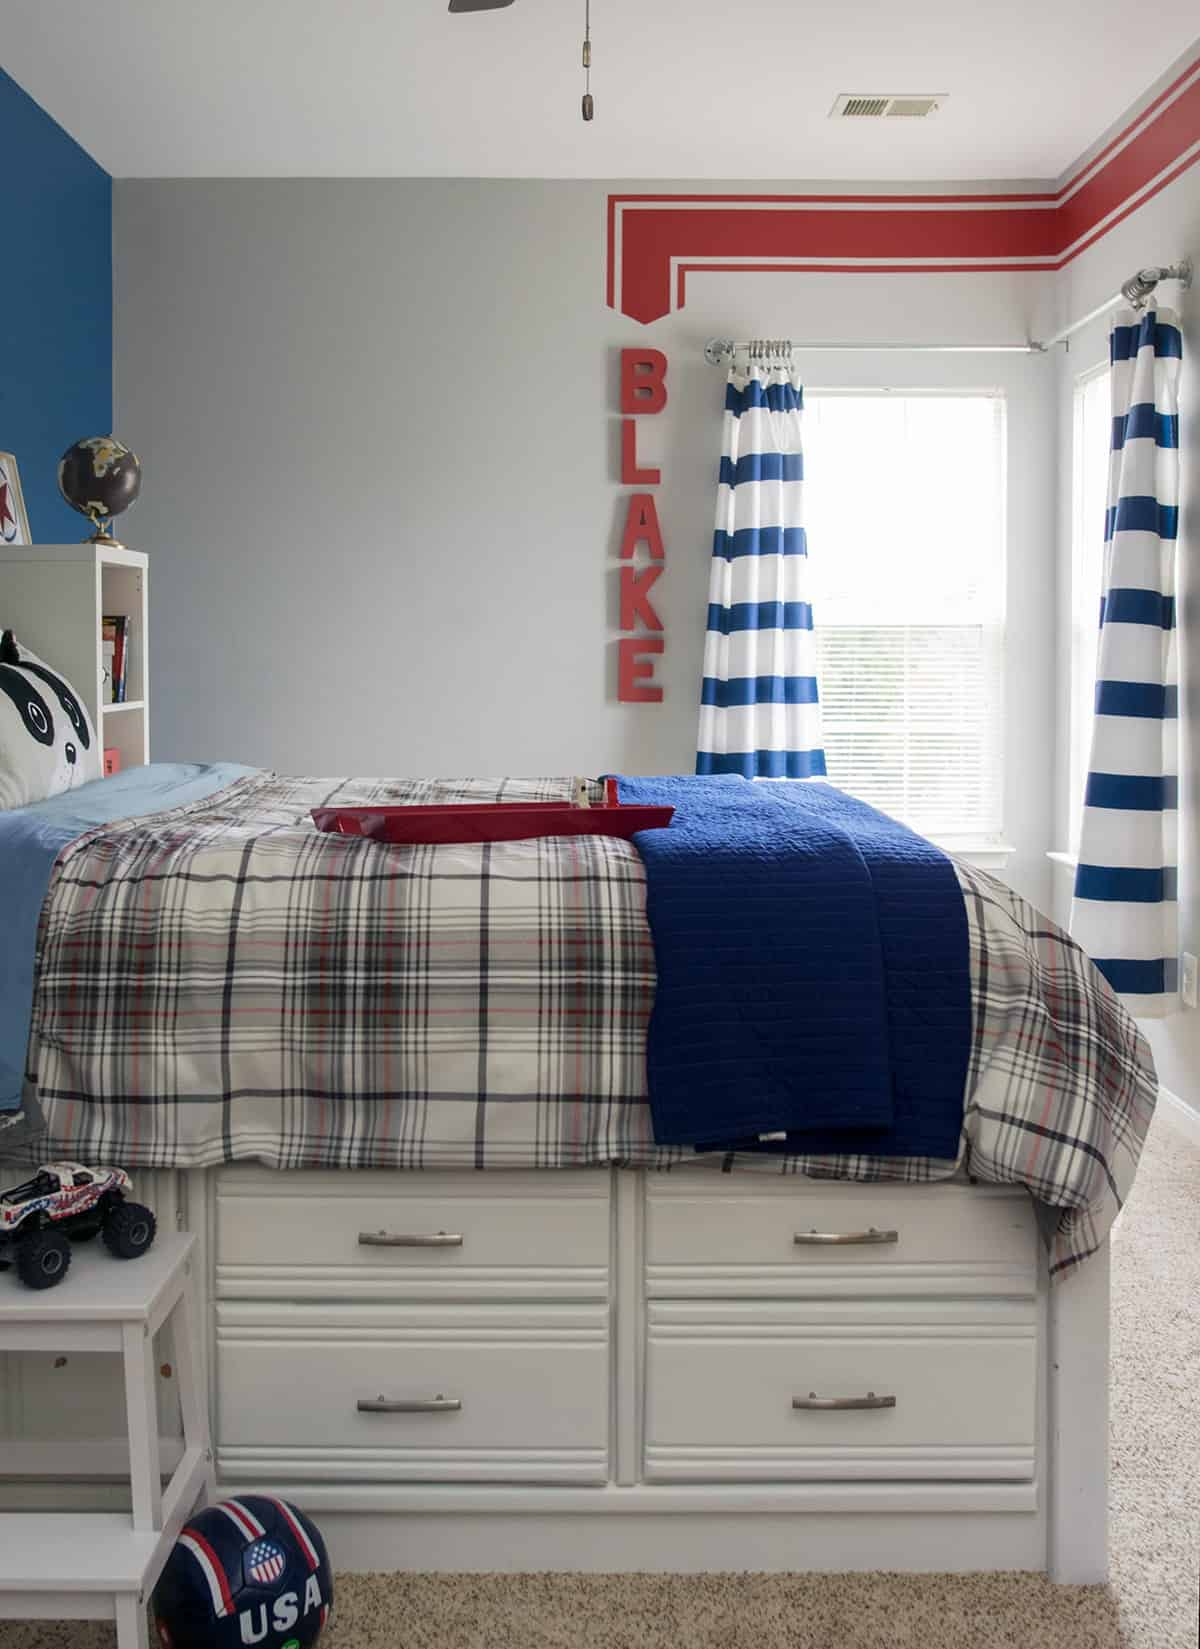 Refinished white captain's bed in little boy's room with plaid comforter and navy blanket. Dark blue and gray walls with personalized red wall stripe.